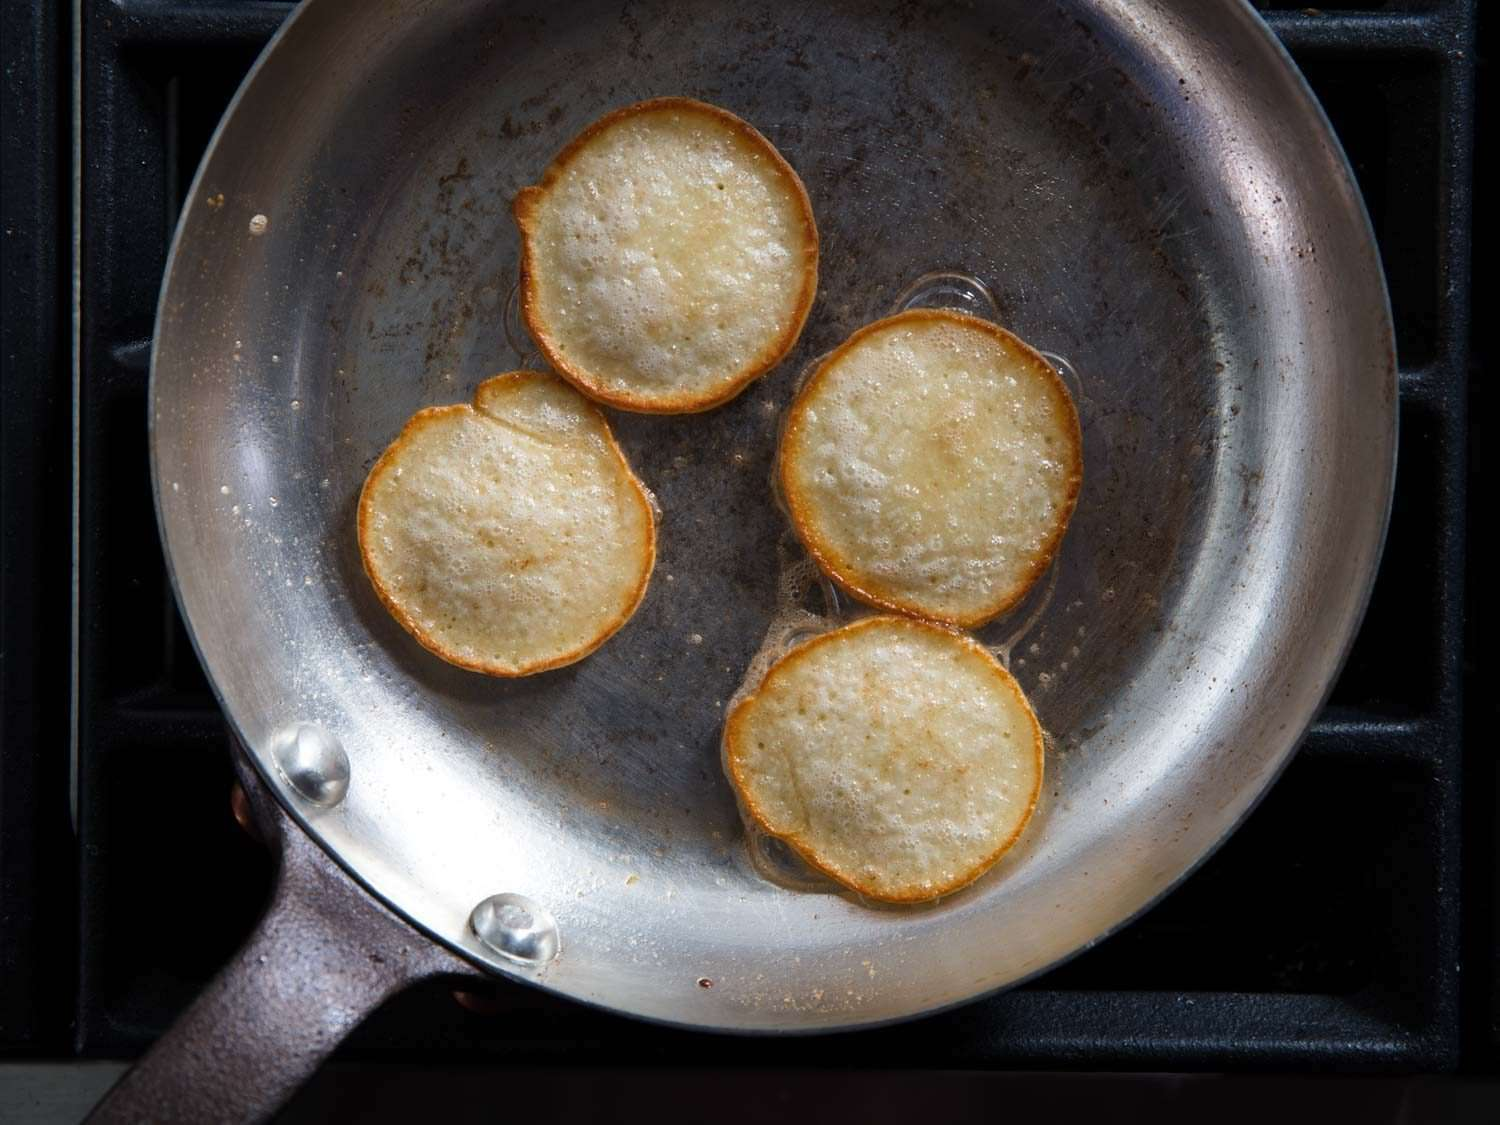 Blini cooking in a copper skillet, showing even browning